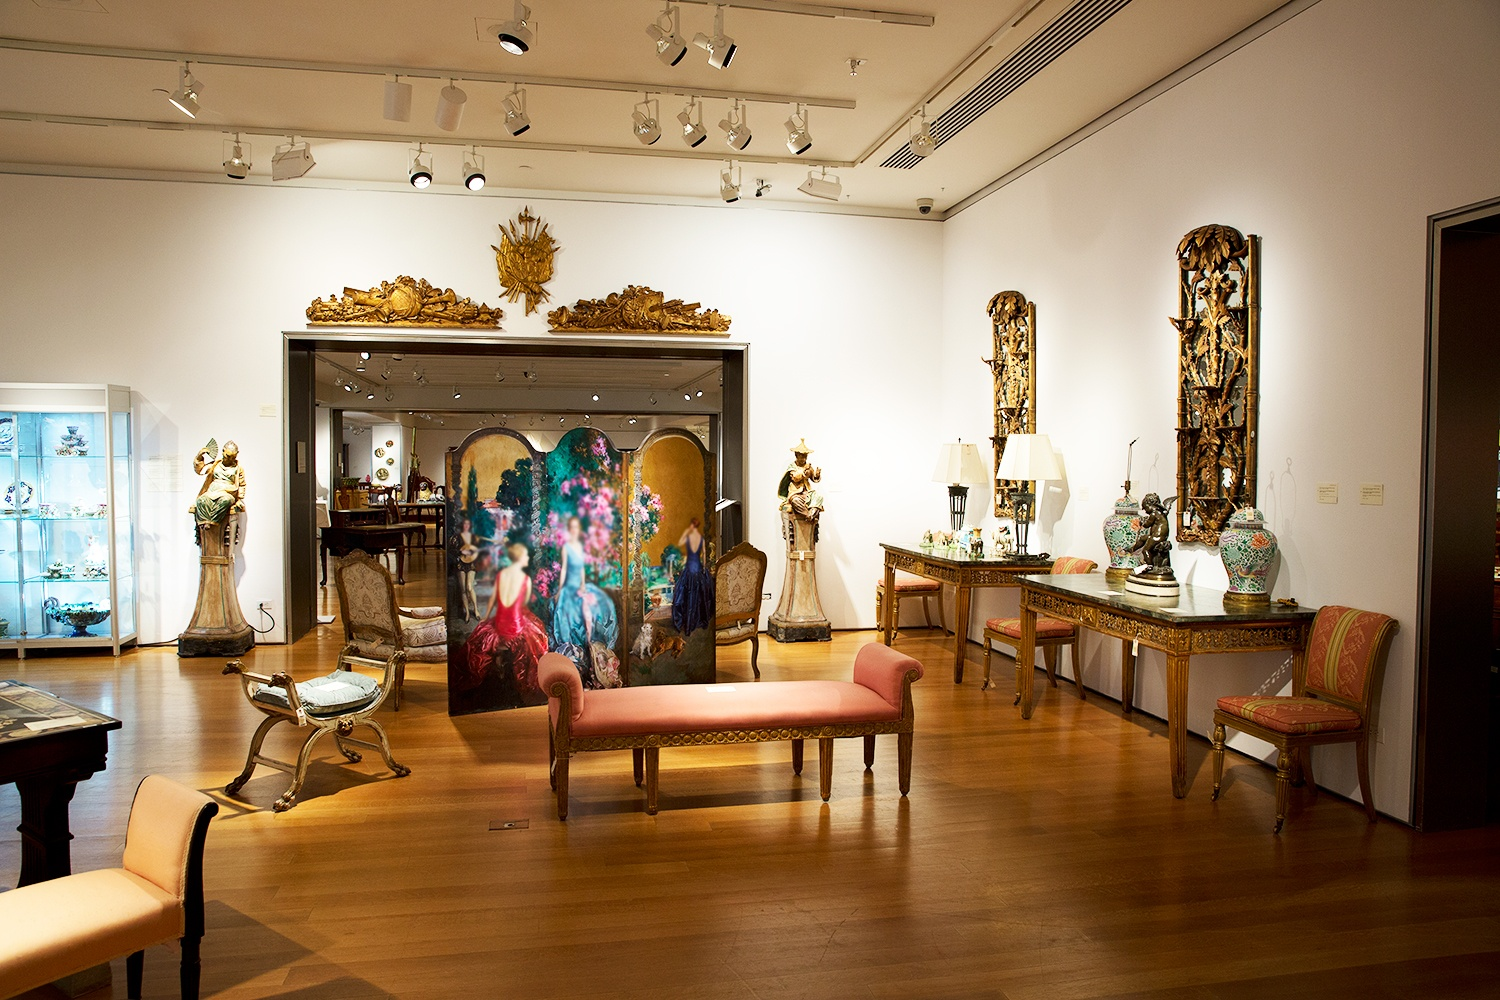 Michael Amadore of Christie's Gallery Design staged the lighting for the furniture and artworks in this Christie's New York Interiors sale.